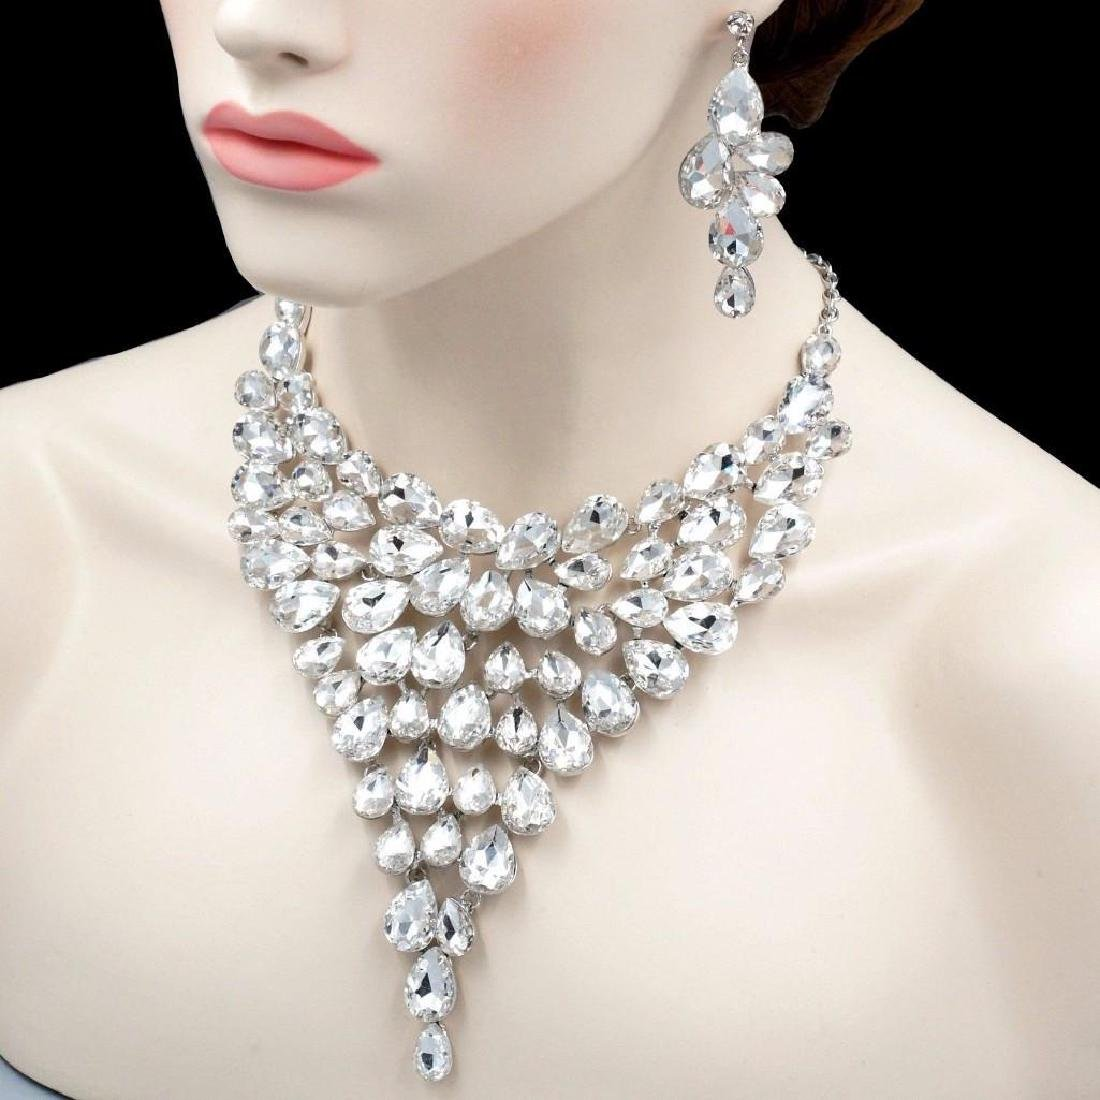 Gorgeous Rhodium Plated Clear Crystal Necklace Earrings - 4